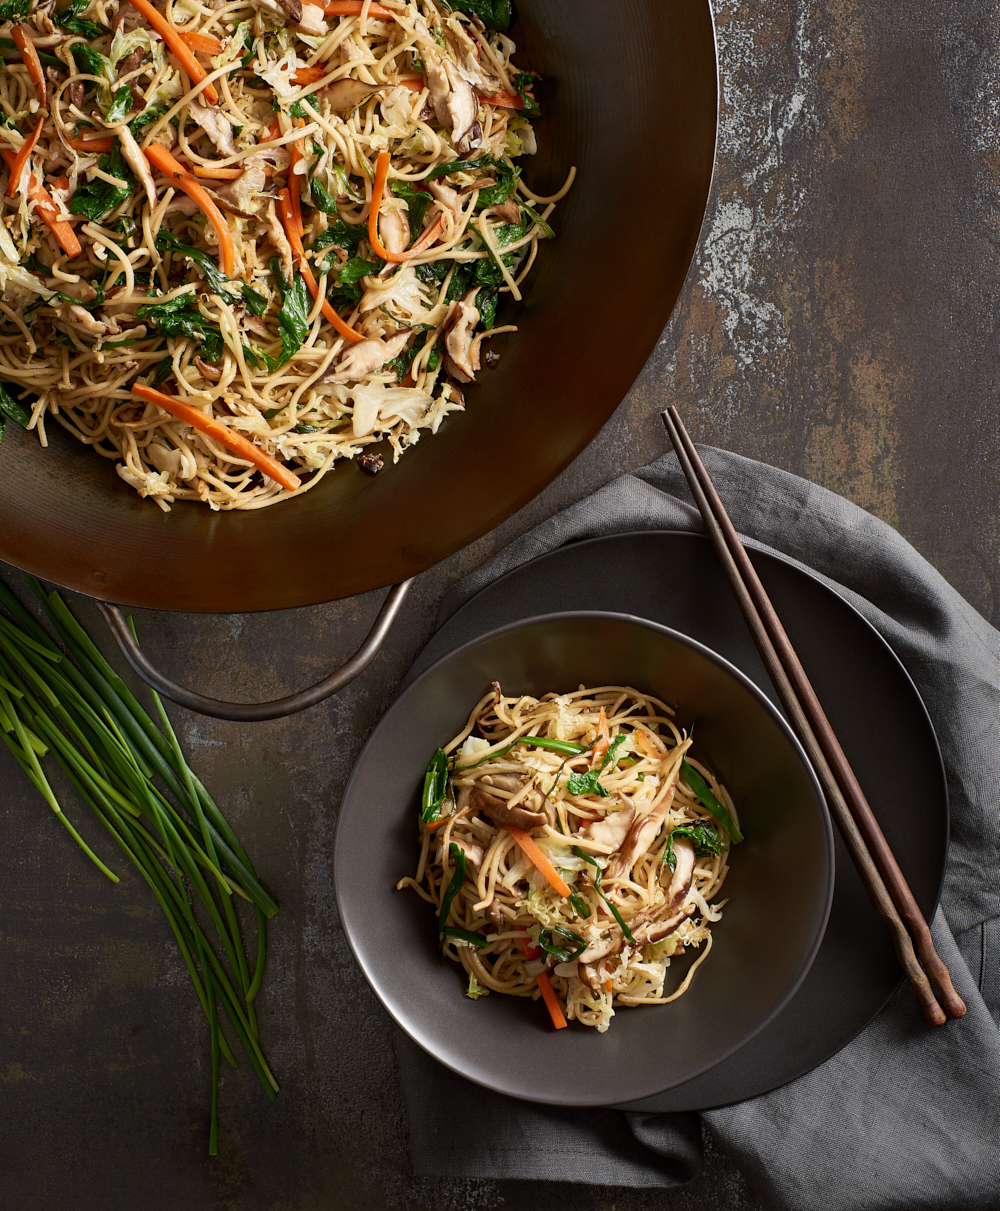 Stir Fried Noodles with Vegetables